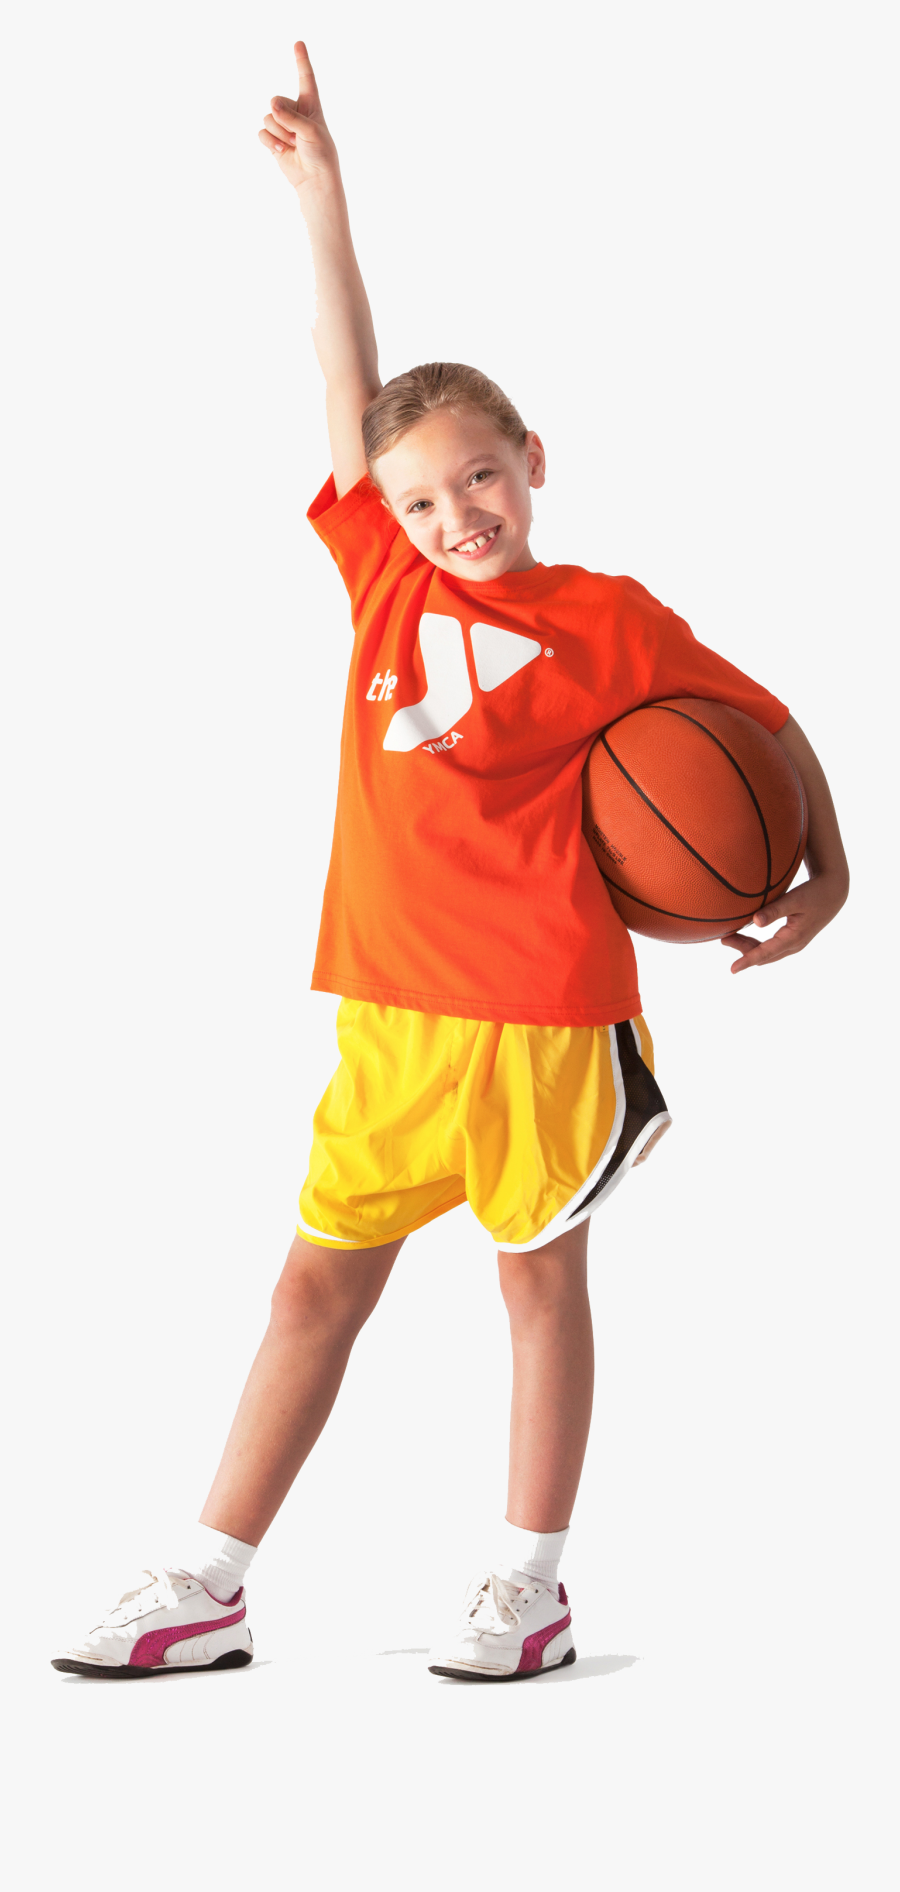 Kids Sports Png - Ymca Basketball, Transparent Clipart